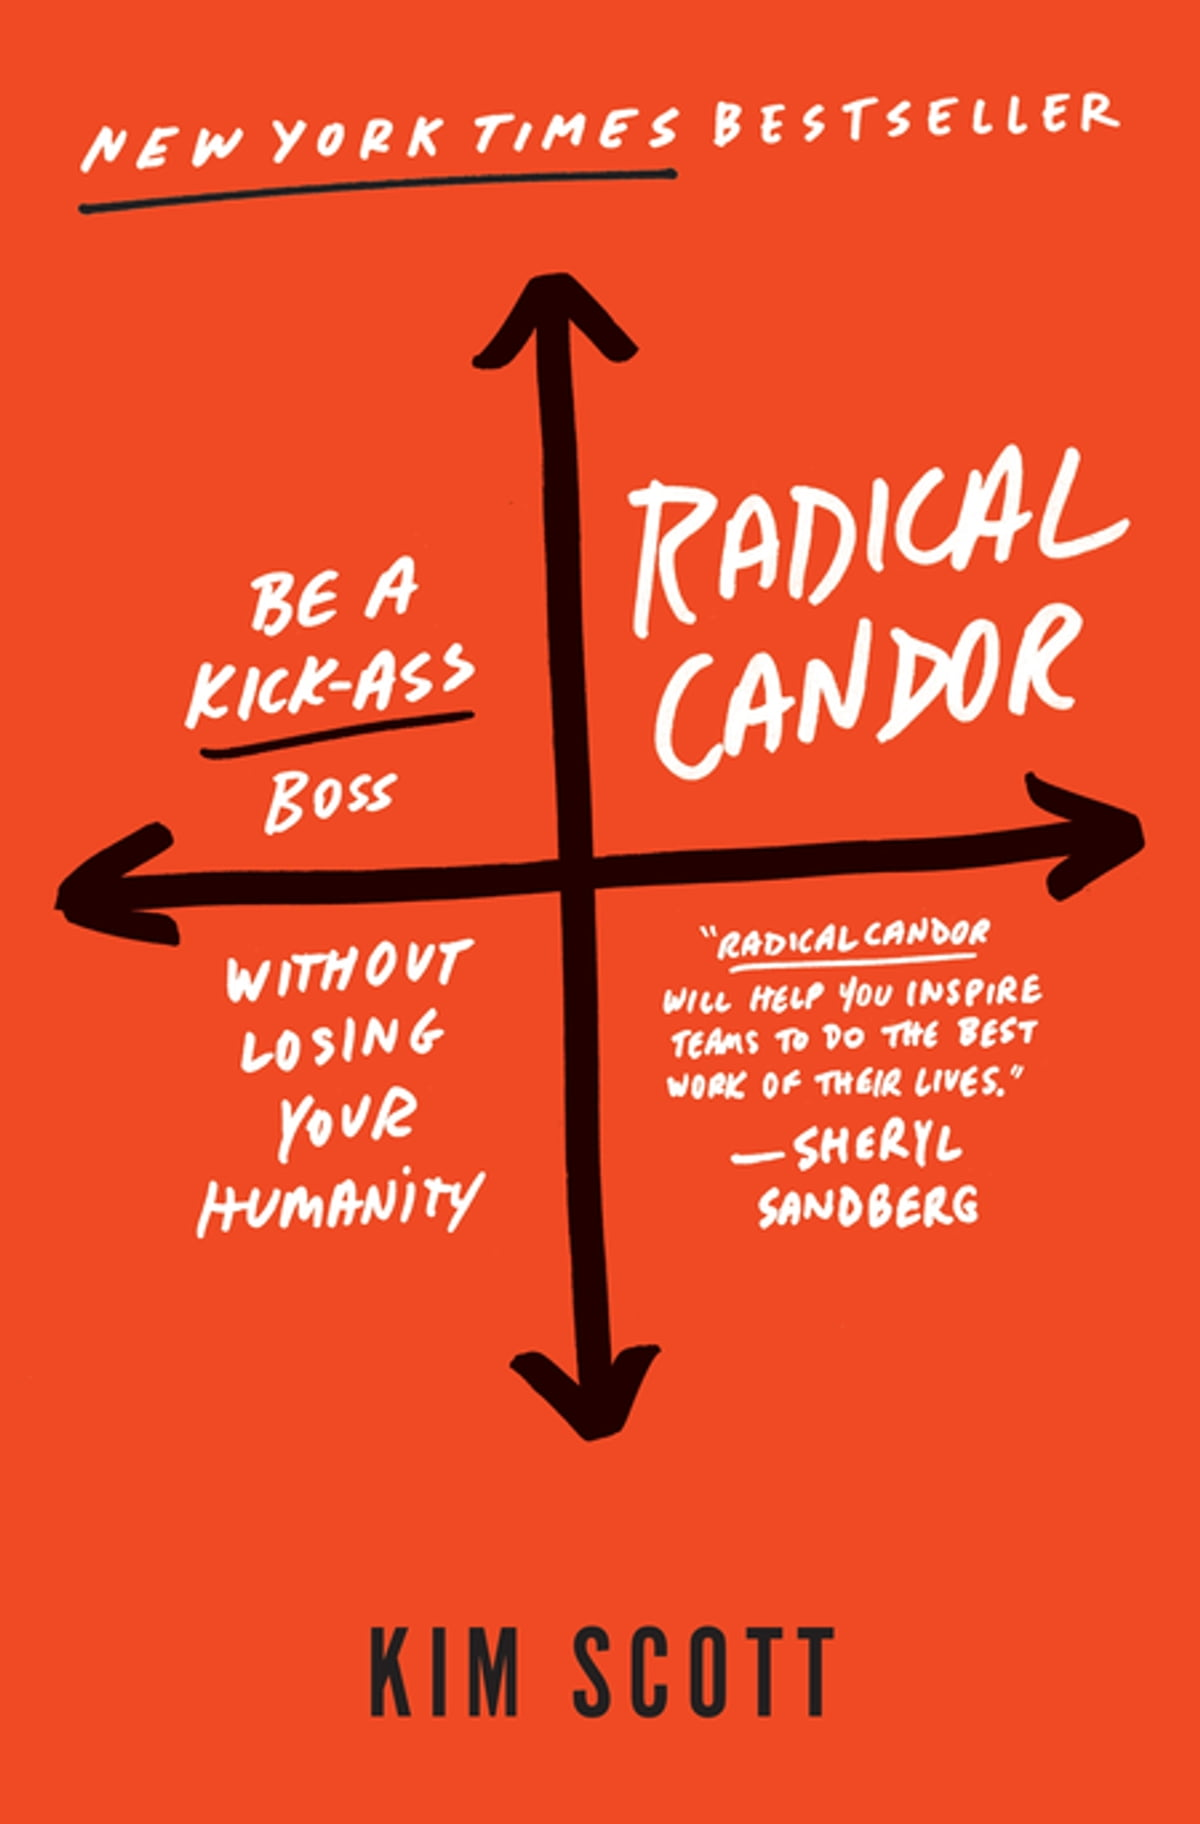 The challenger sale ebook by matthew dixon 9781101545898 radical candor be a kick ass boss without losing your humanity ebook by kim fandeluxe Choice Image